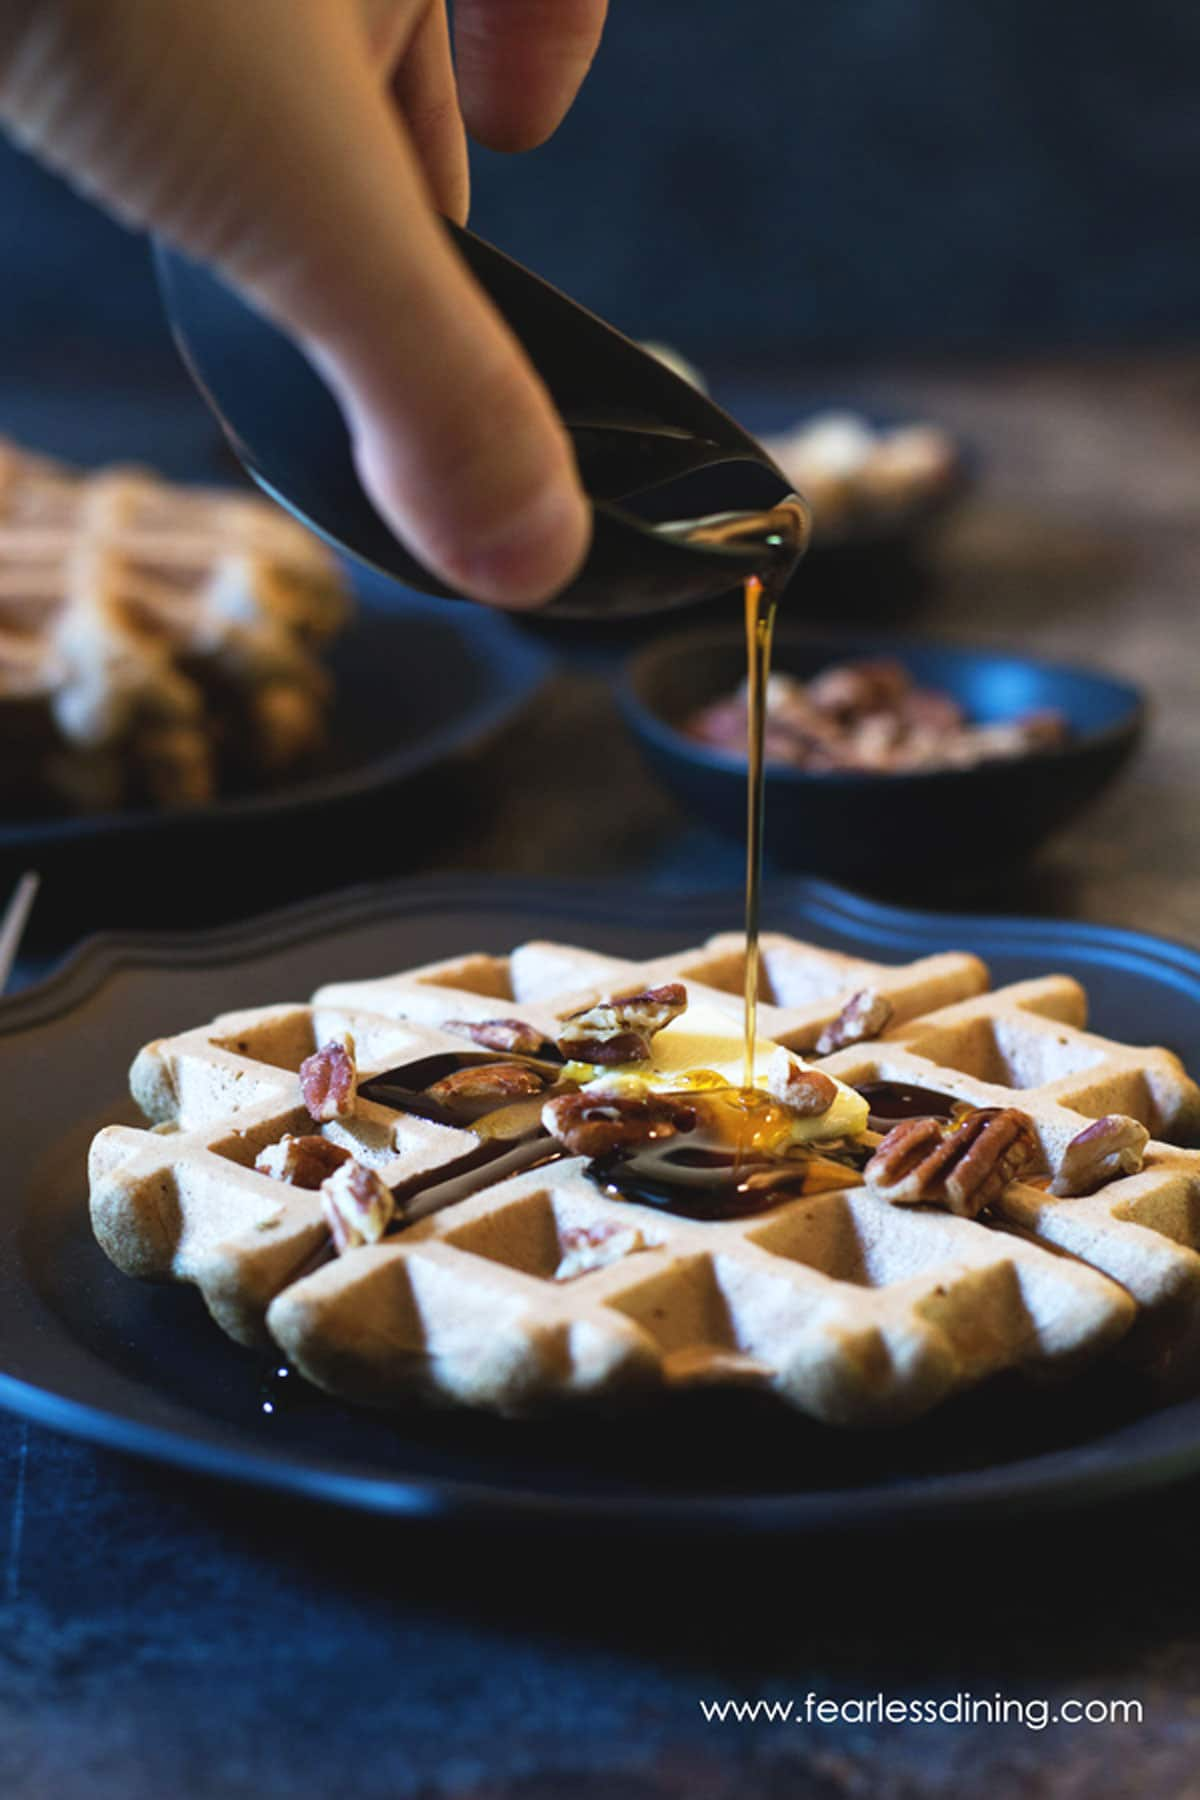 pouring syrup on banana flour waffles